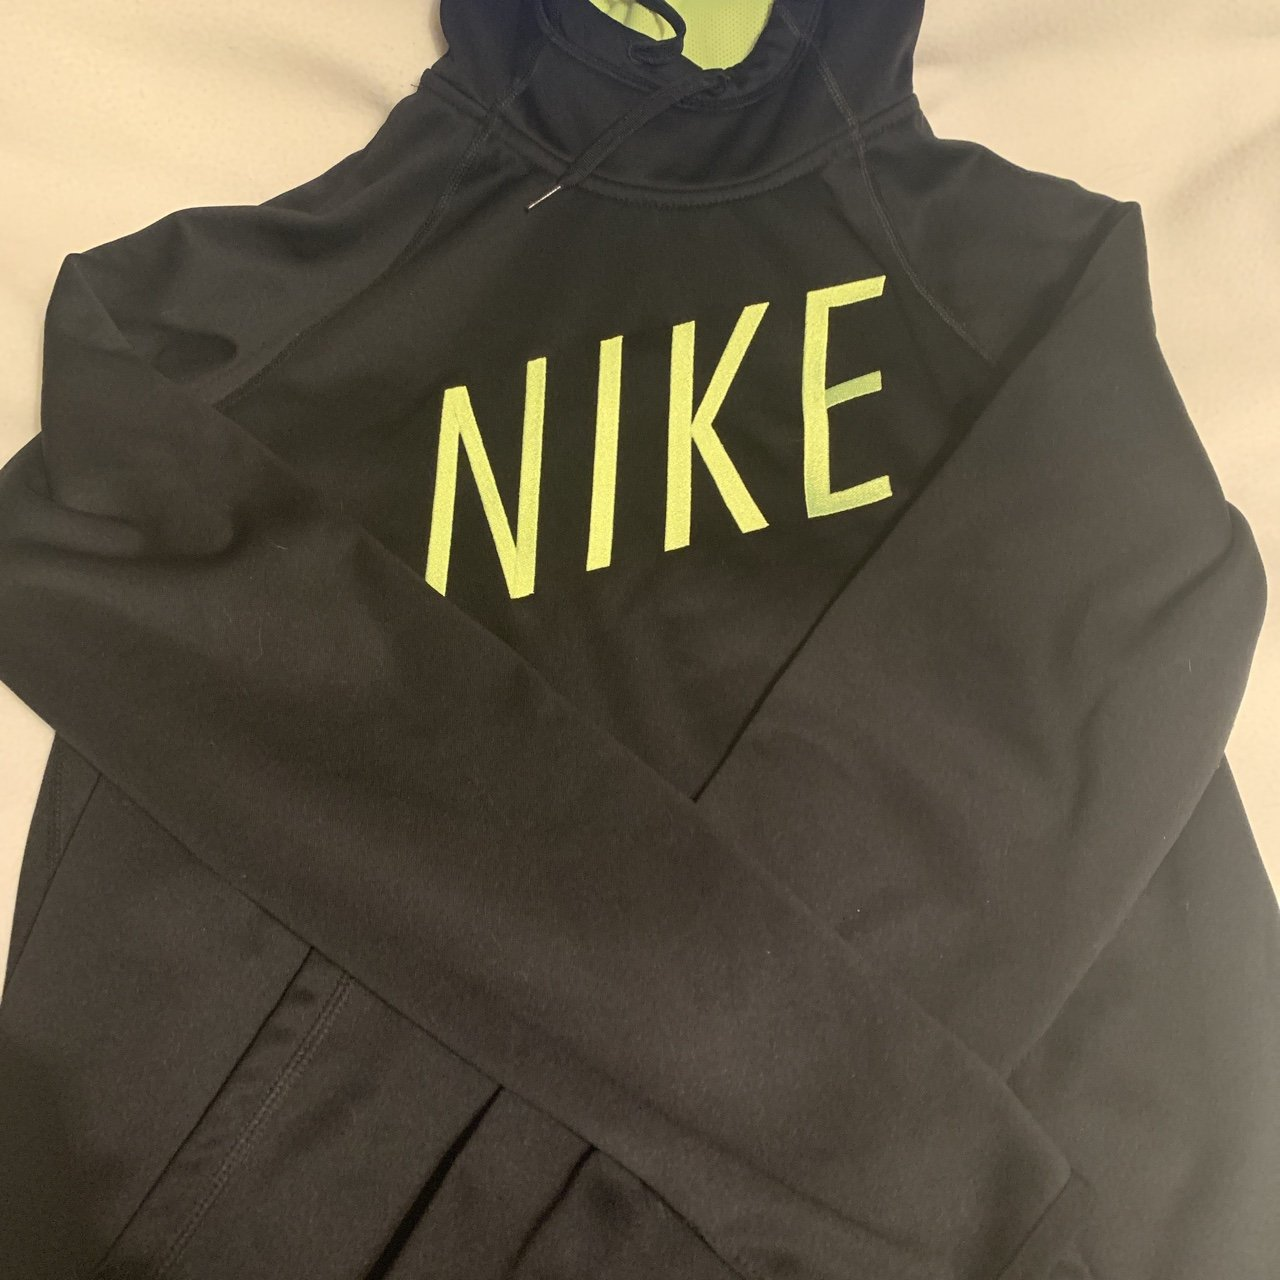 69601ff82a4b Nike Dry Fit Hoodie Black and Yellow 🖤💛 - Depop